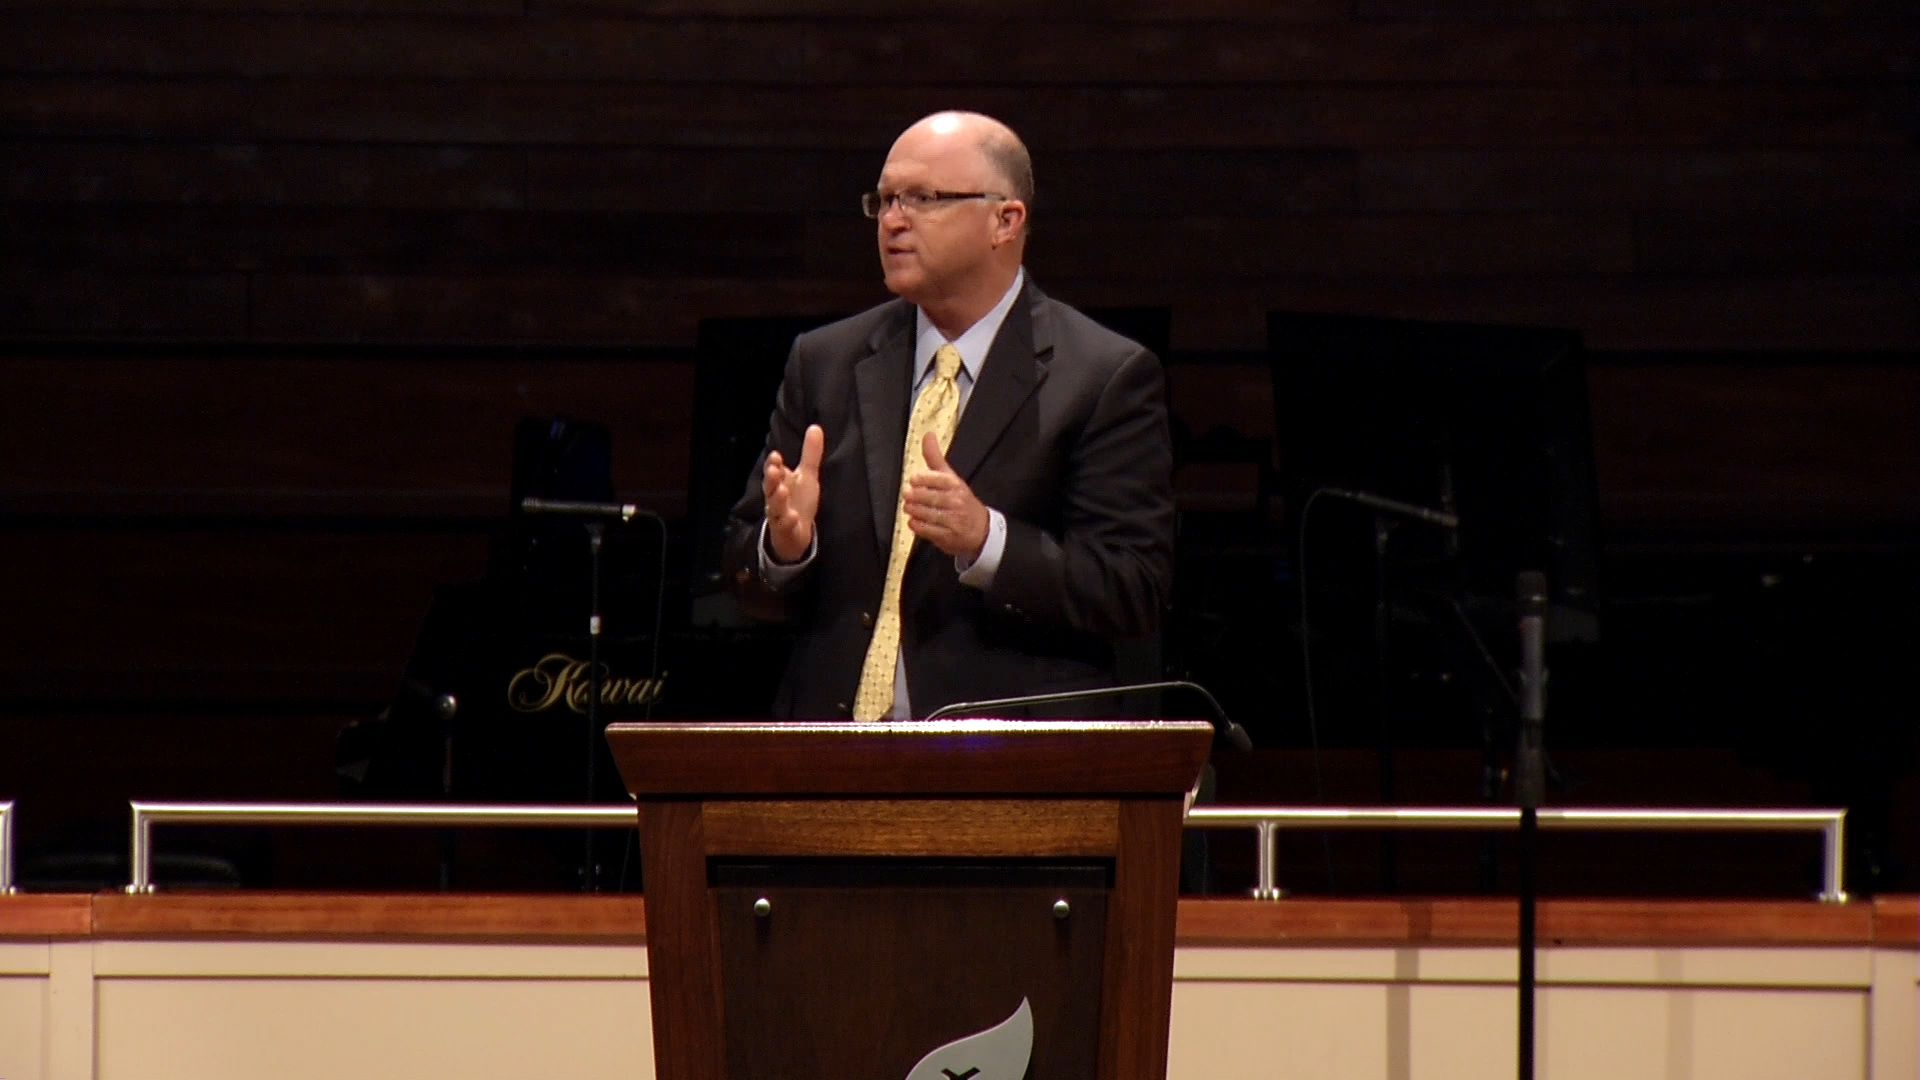 Pastor Paul Chappell: The Sufficiency of Grace